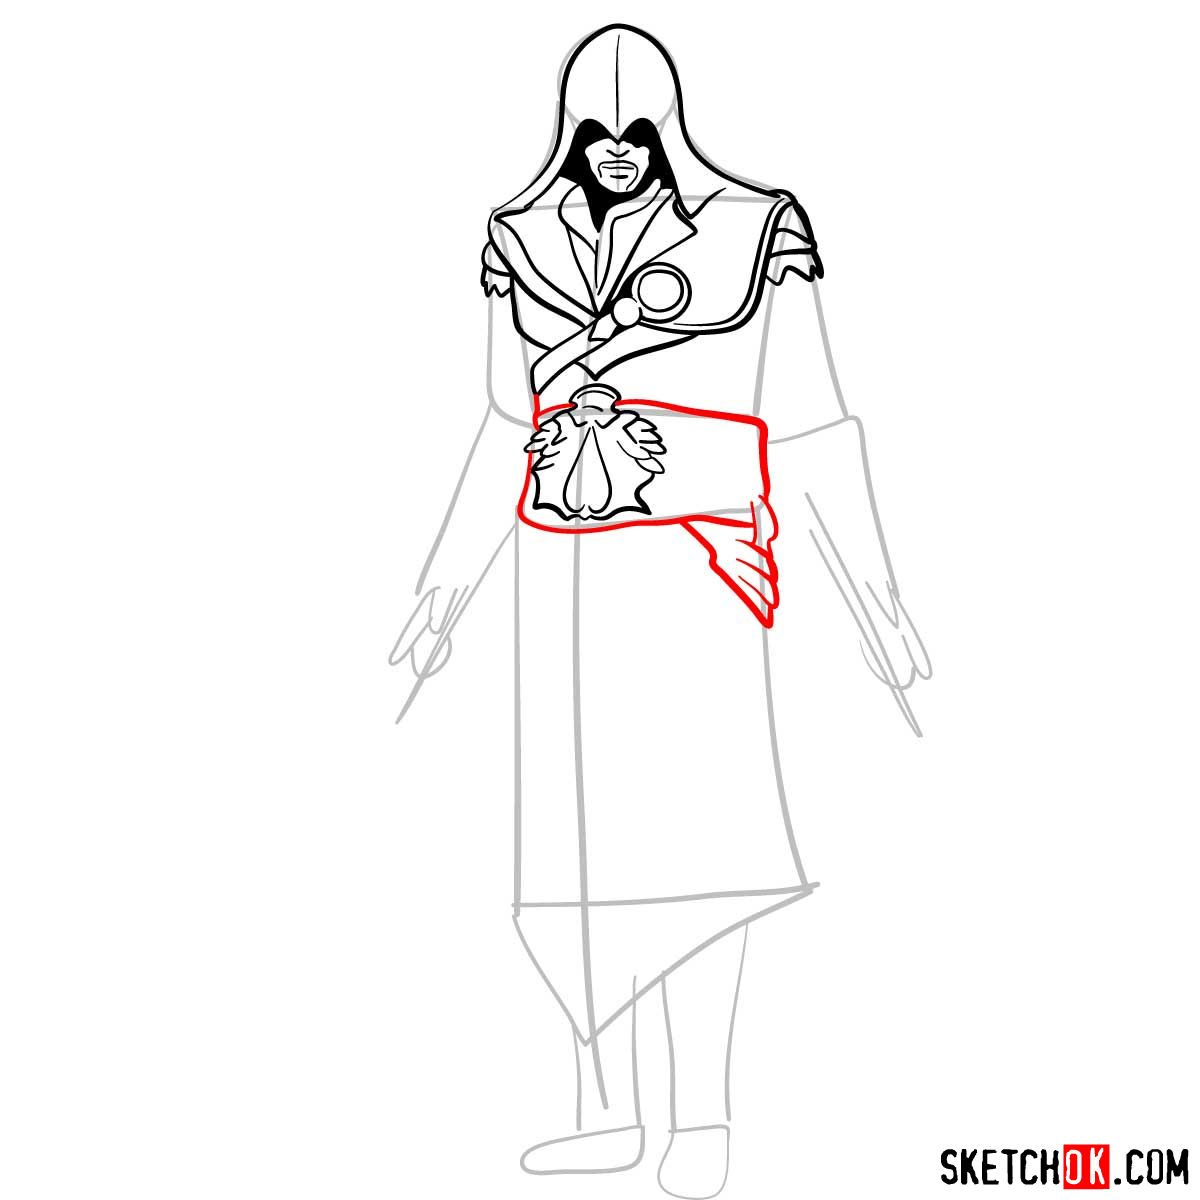 How to draw an Assassin from Assassin's Creed game - step 09